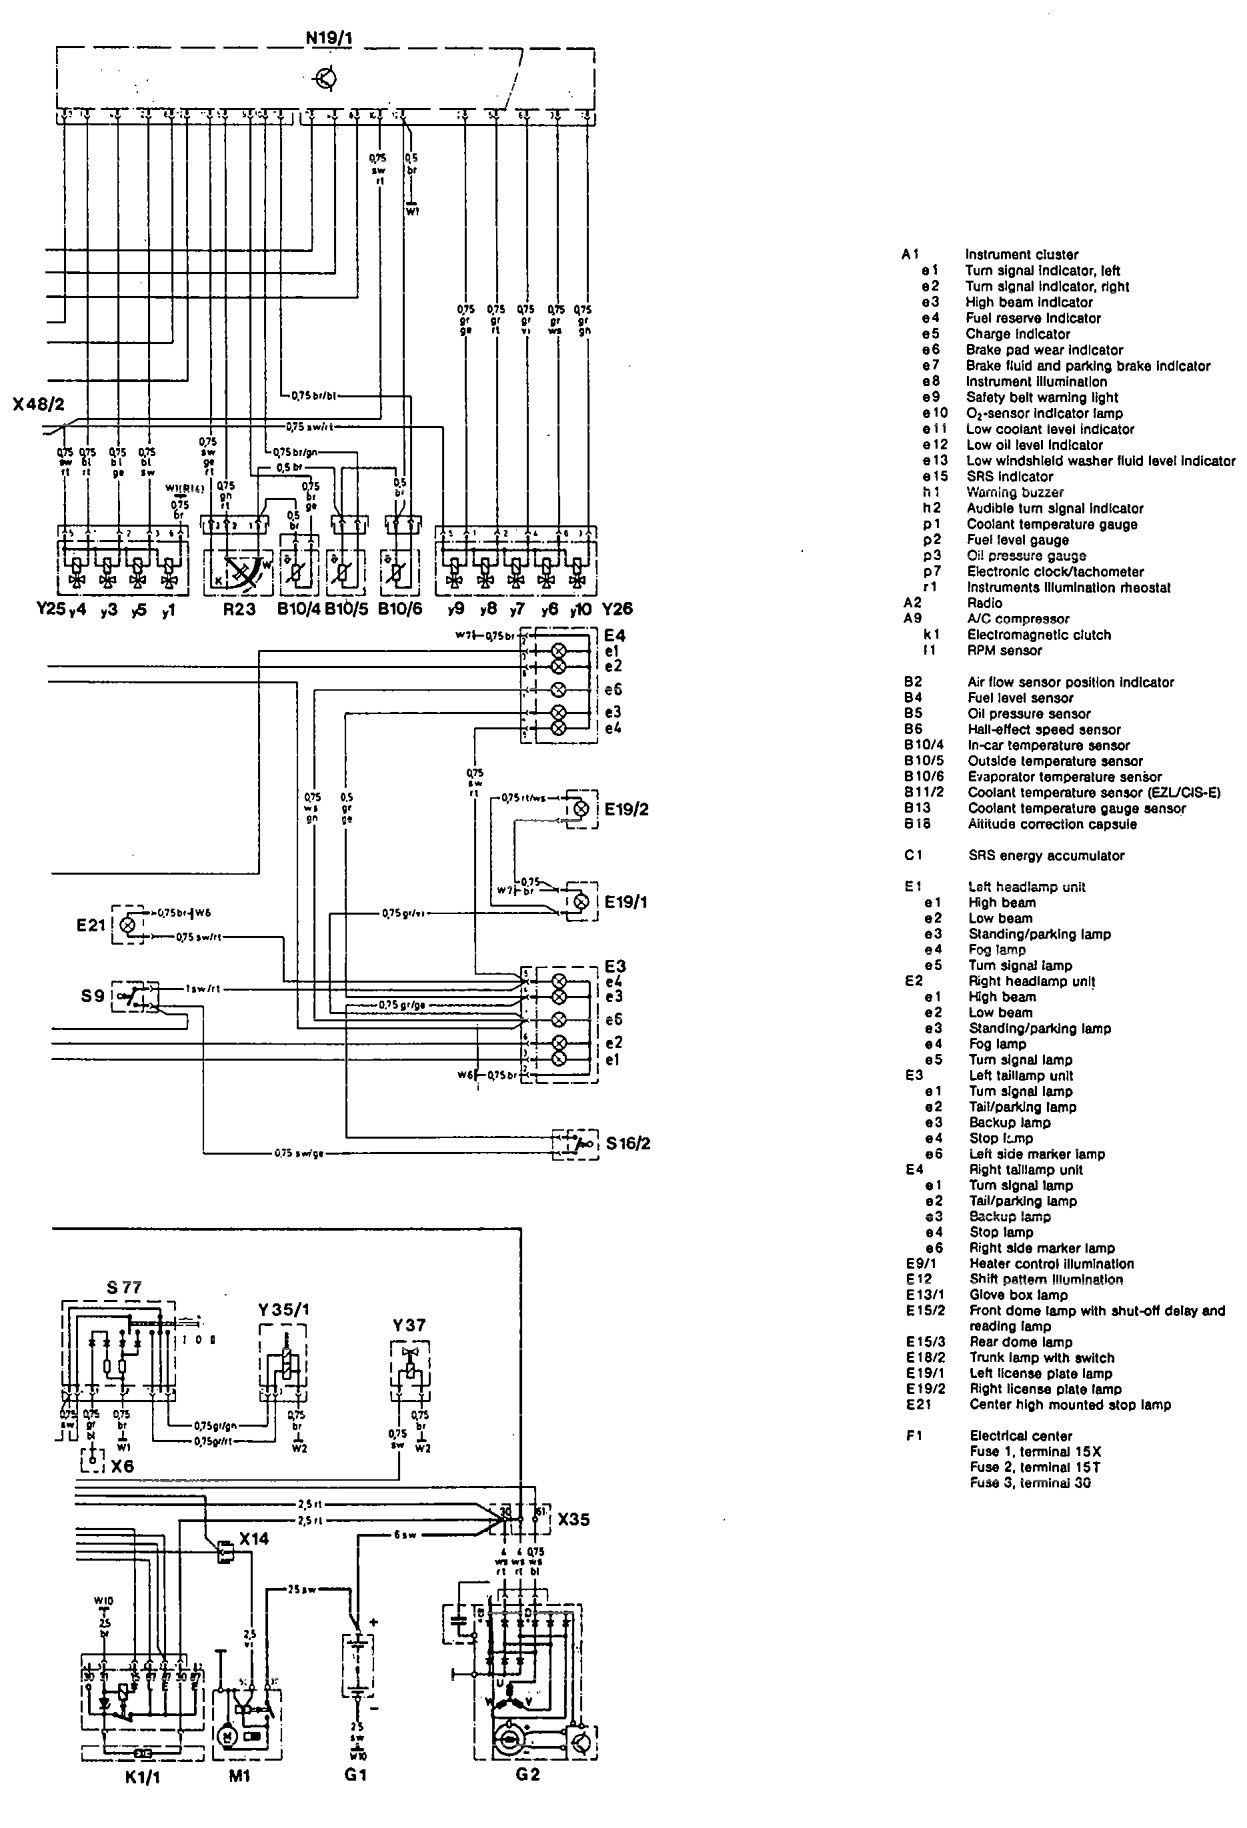 Mercedes Benz 190e Electrical Wiring Diagram Download Diagrams Library 1992 Starting